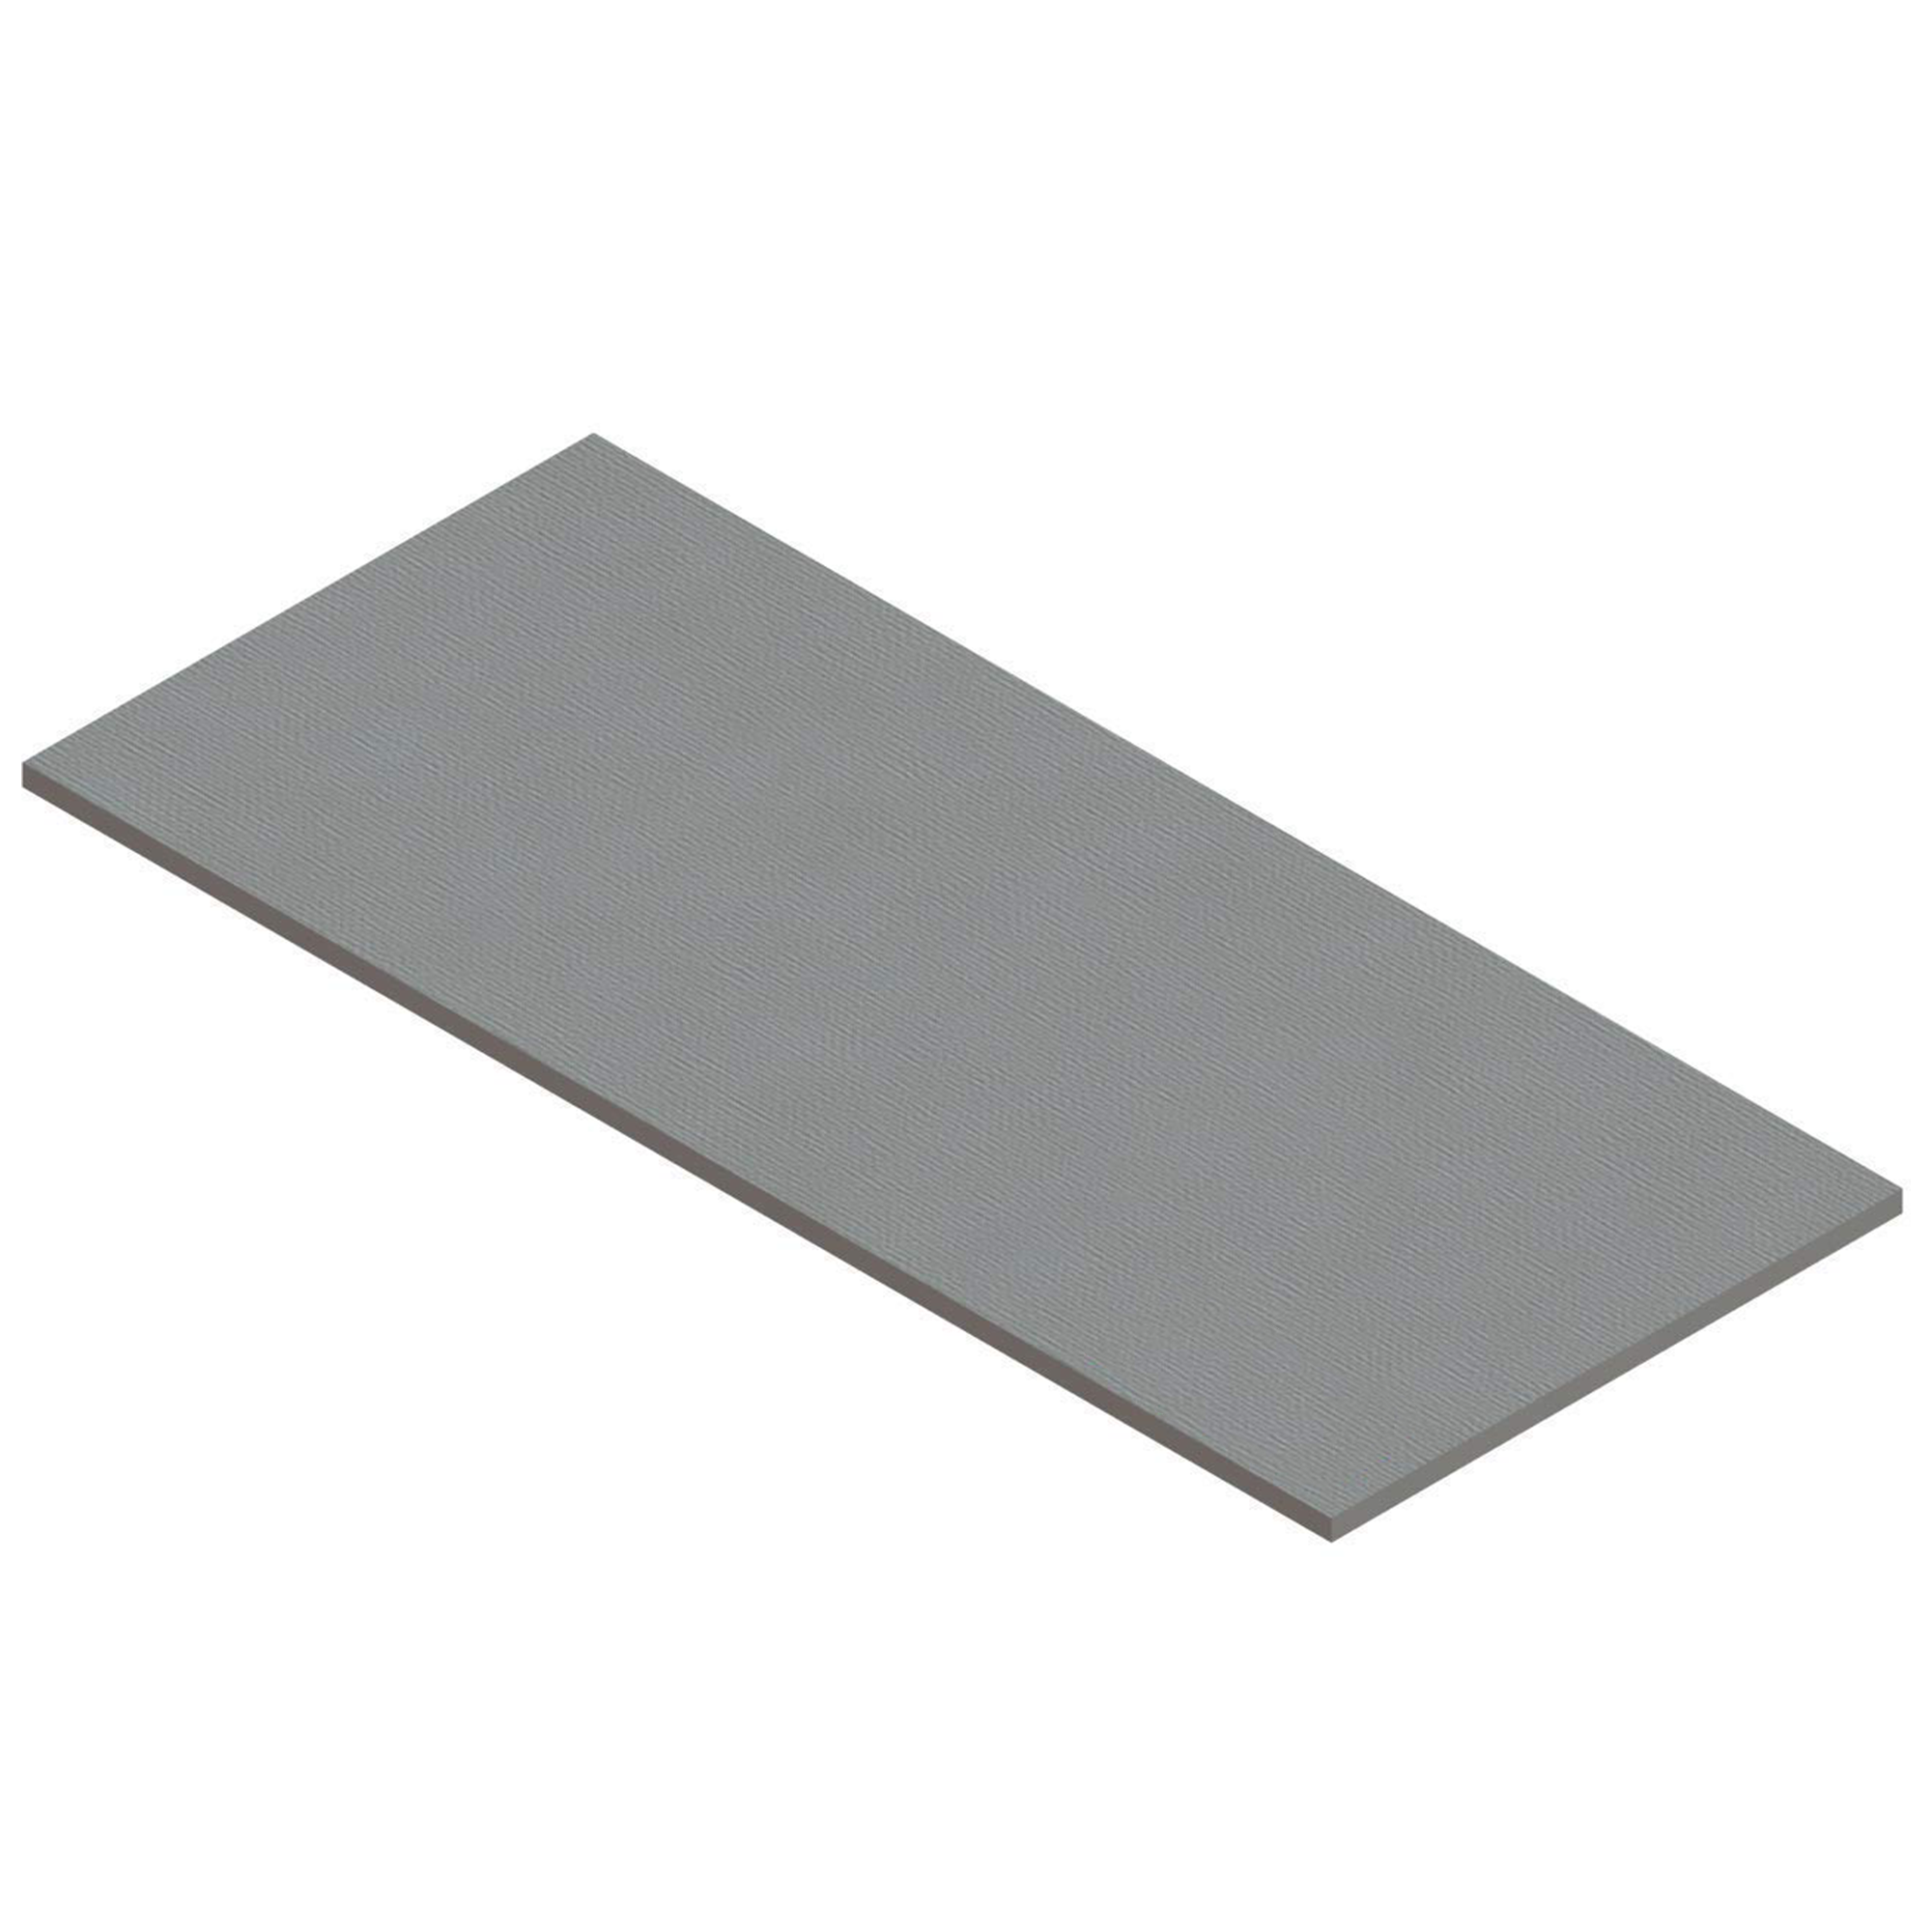 2801A | US Stove Company Ceramic Fiber Board For Model 2000, 88146-AMP